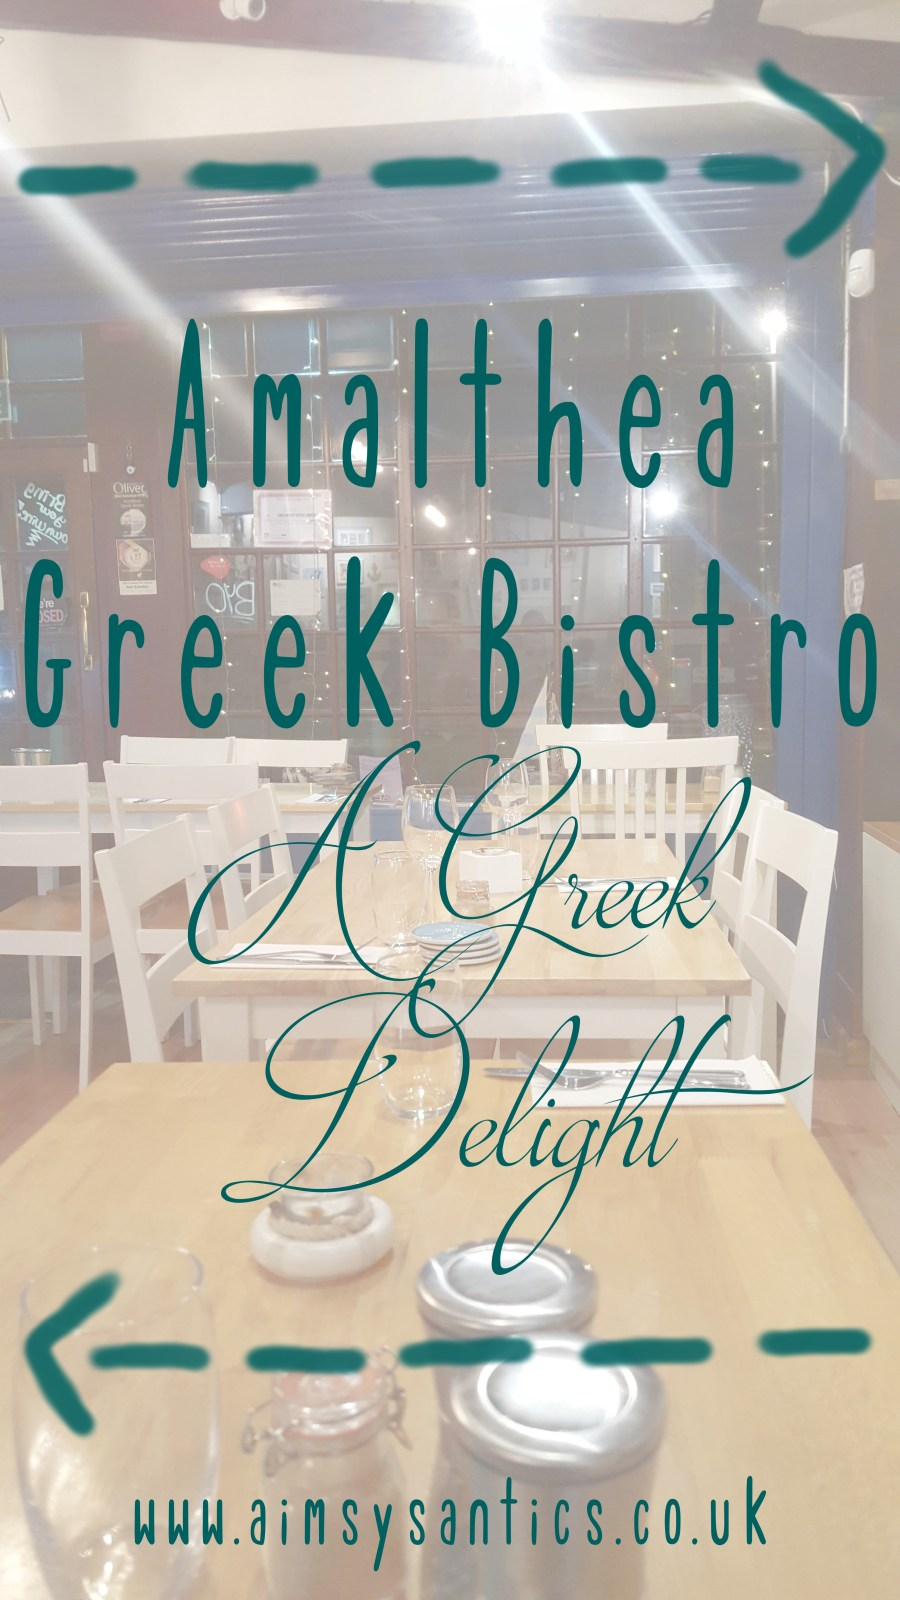 "Image of Amalthea restaurant inside (faded) with text overlay ""Amalthea Greek Bistro: A Greek Delight""."